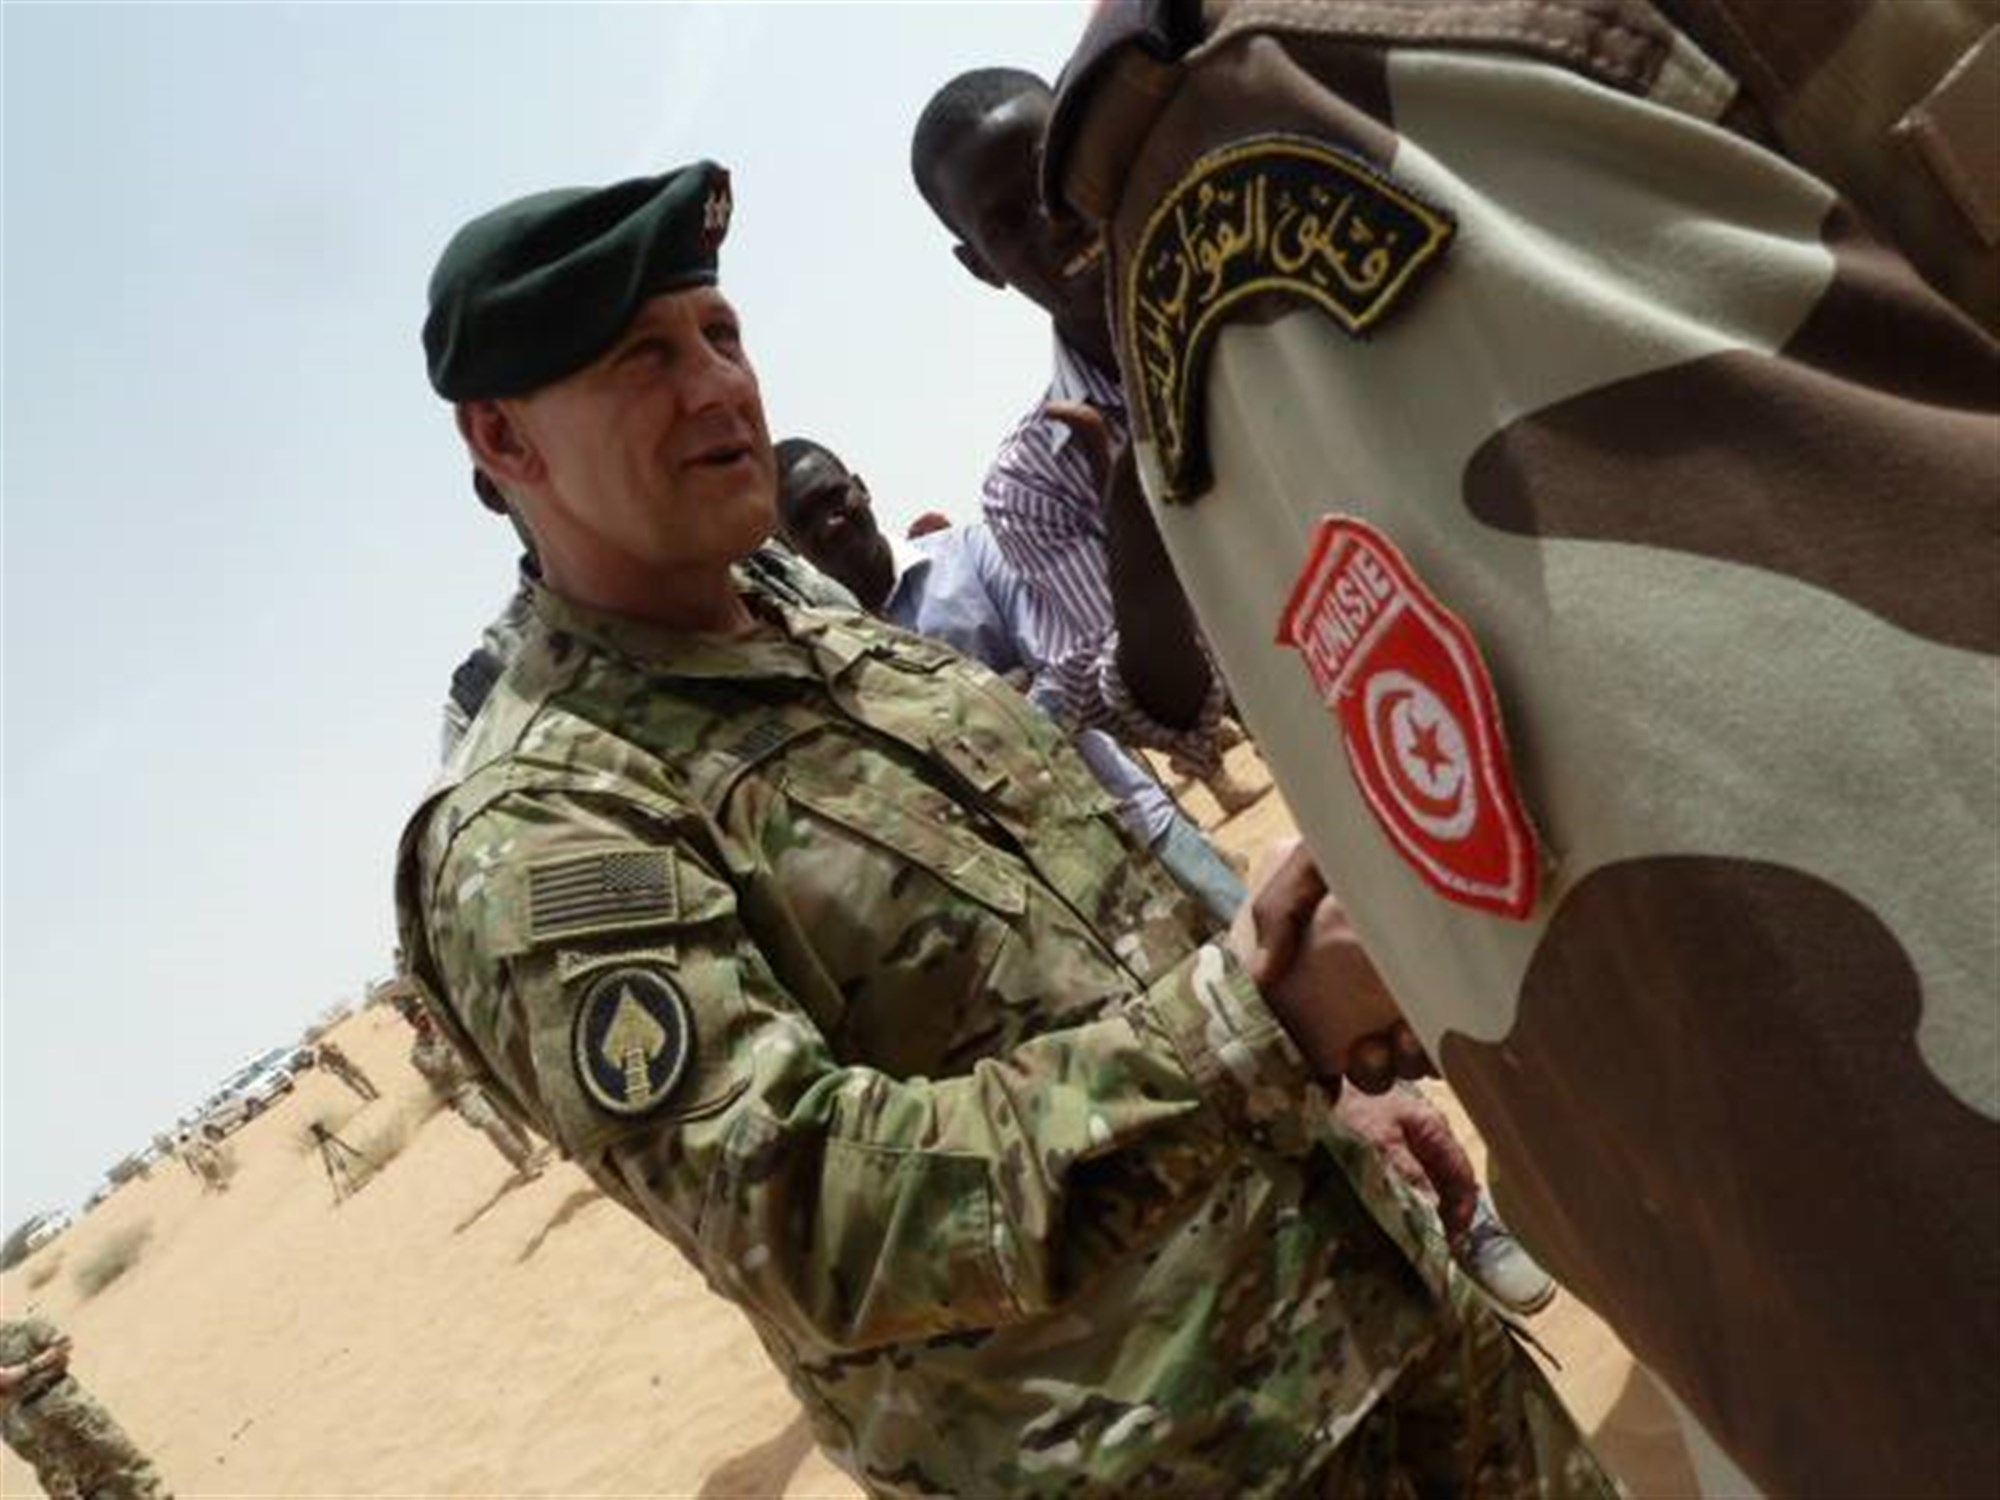 Special Operations Command Africa Commander General, U.S. Army Maj. Gen. James Linder, congratulates Tunisian special forces after a successful multi-national demonstration on Mar. 7, 2015 in the vicinity of Mao, Chad. The soldiers completed three weeks of training in austere conditions as part of the Flintlock 2015 exercise. (Photo by U.S. Air Force Maj. Nathan Broshear/RELEASED)